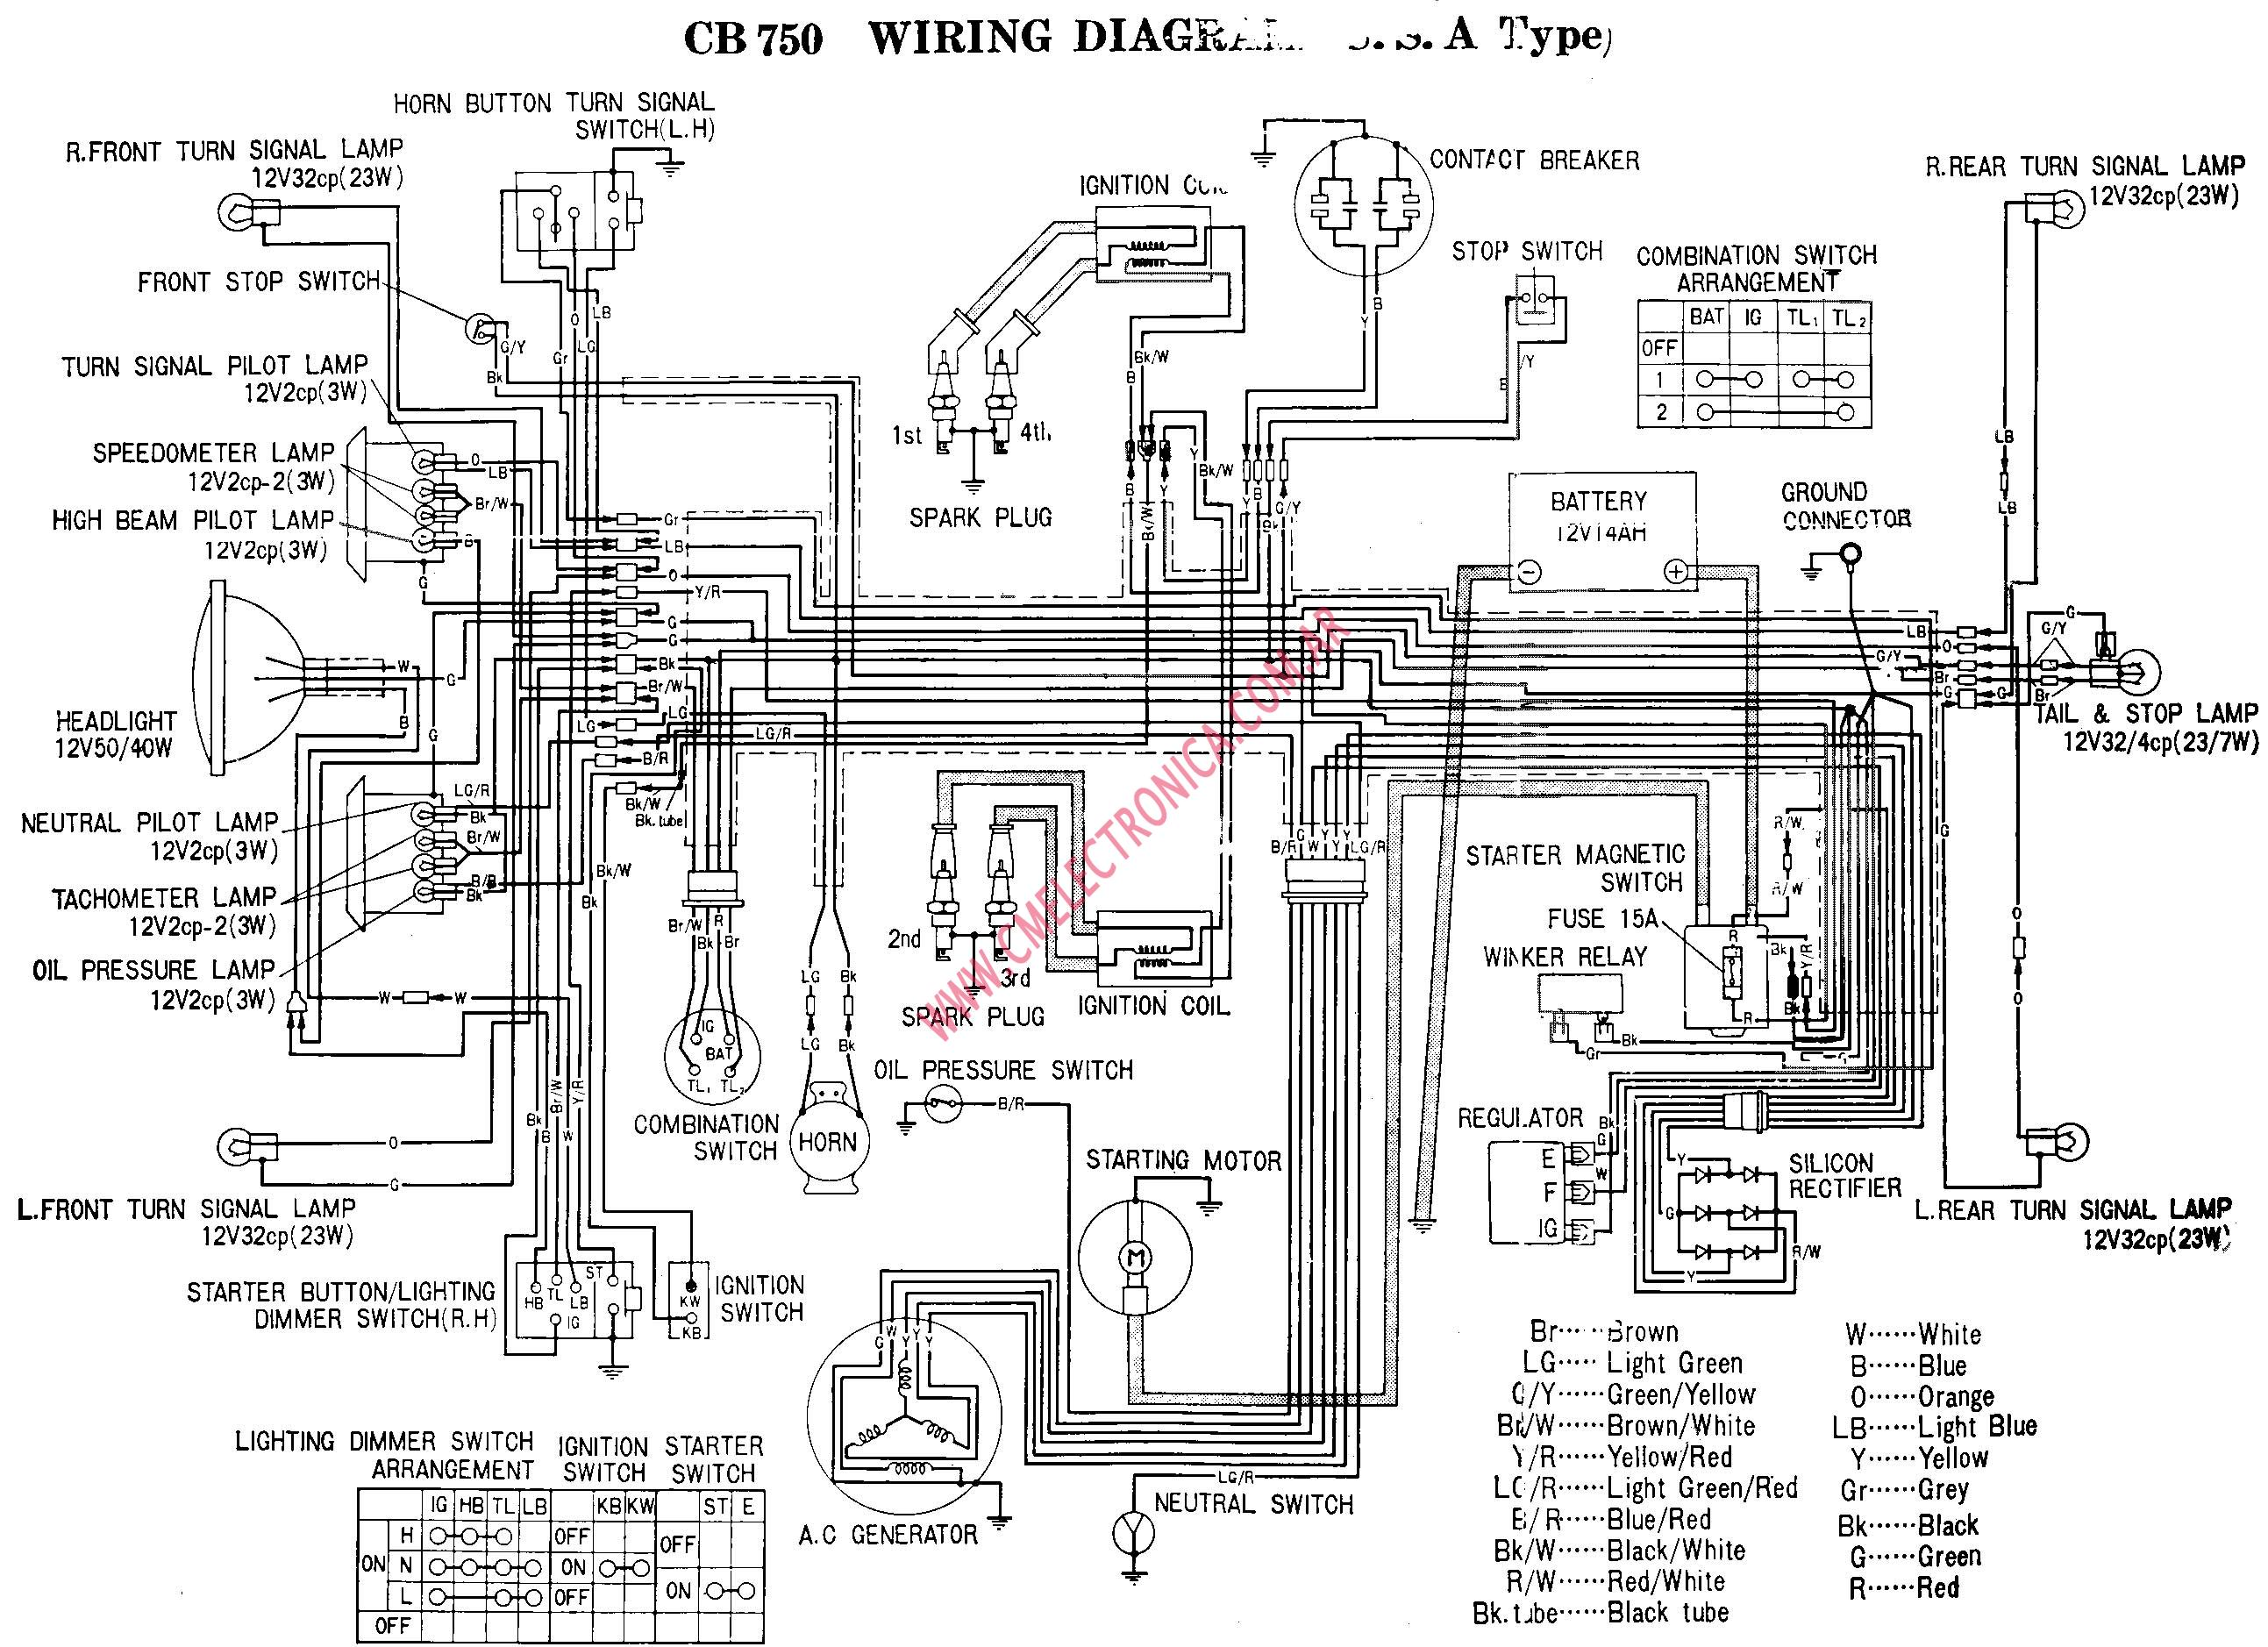 1982 Honda Shadow 750 Wiring Diagram, 1982, Free Engine